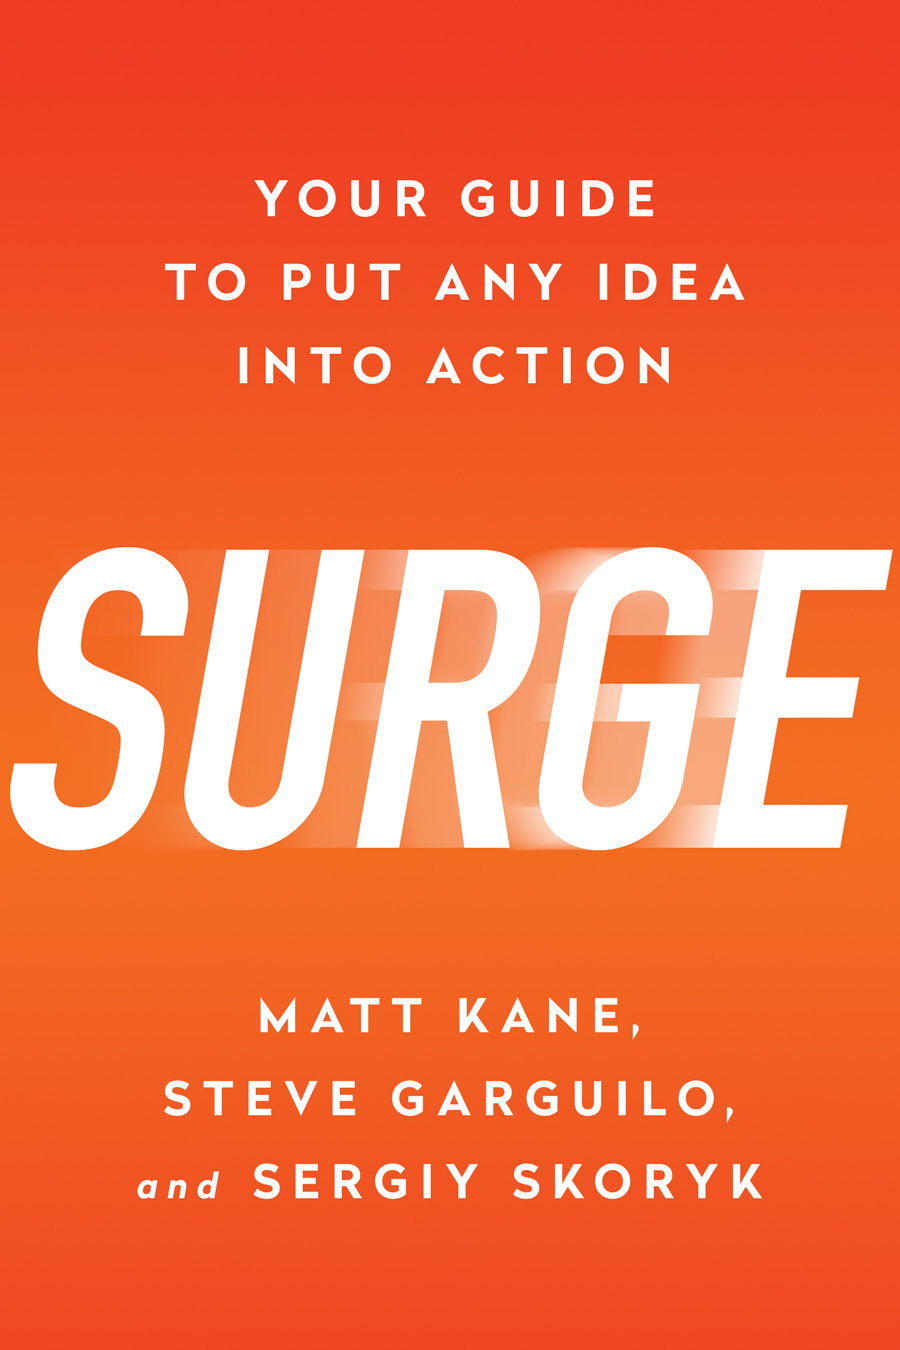 featured-in-book-surge-put-any-idea-into-action